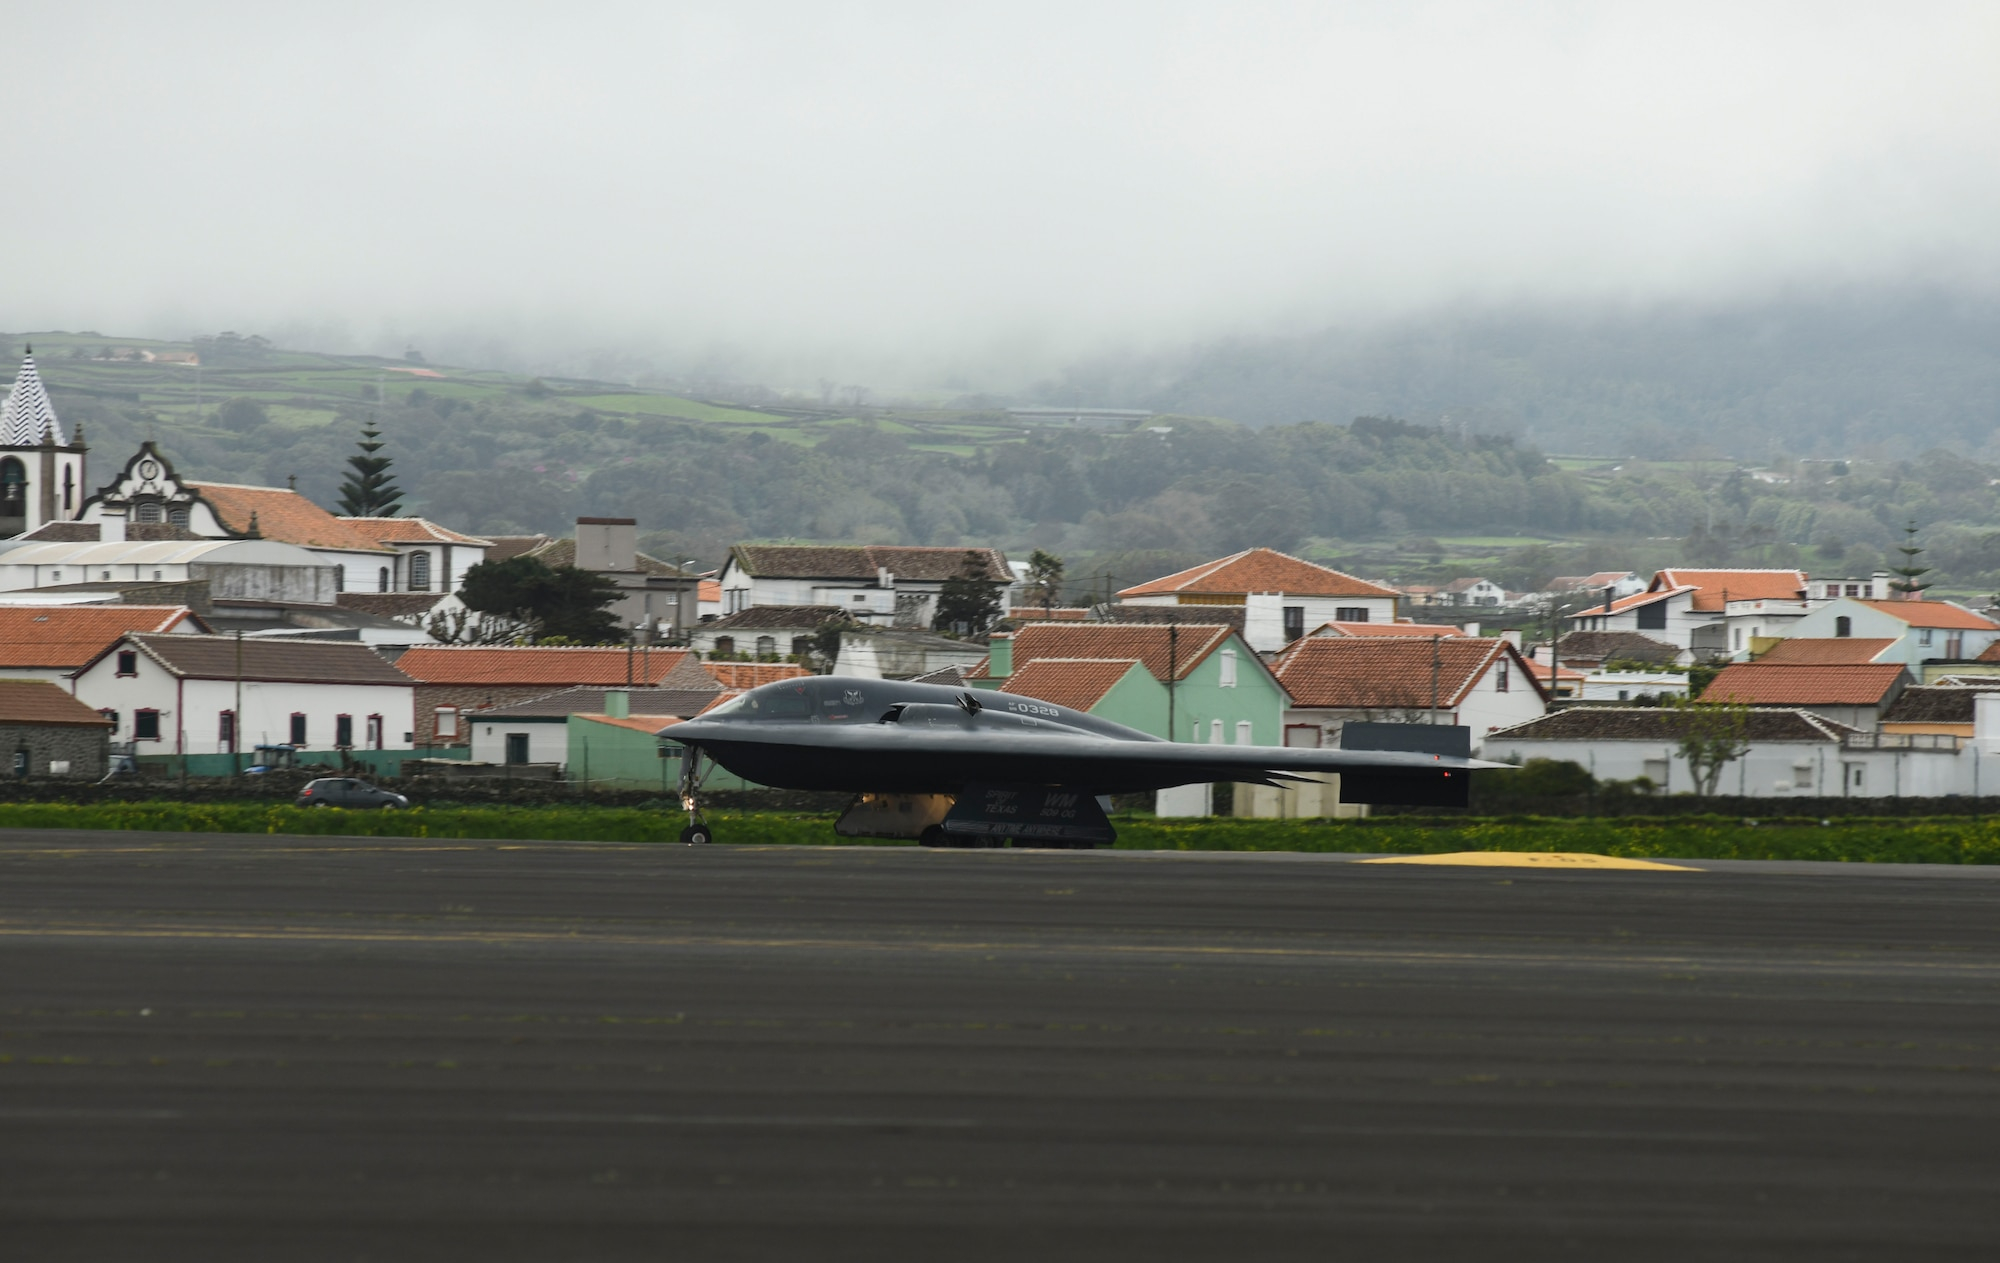 Three B-2 Spirit stealth bombers, assigned to Whiteman Air Force Base, Missouri, arrive at  Lajes Field, Azores, for a bomber task force mission, March 16, 2021. Strategic bomber missions are conducted periodically to enhance the readiness necessary to respond to challenges around the world.